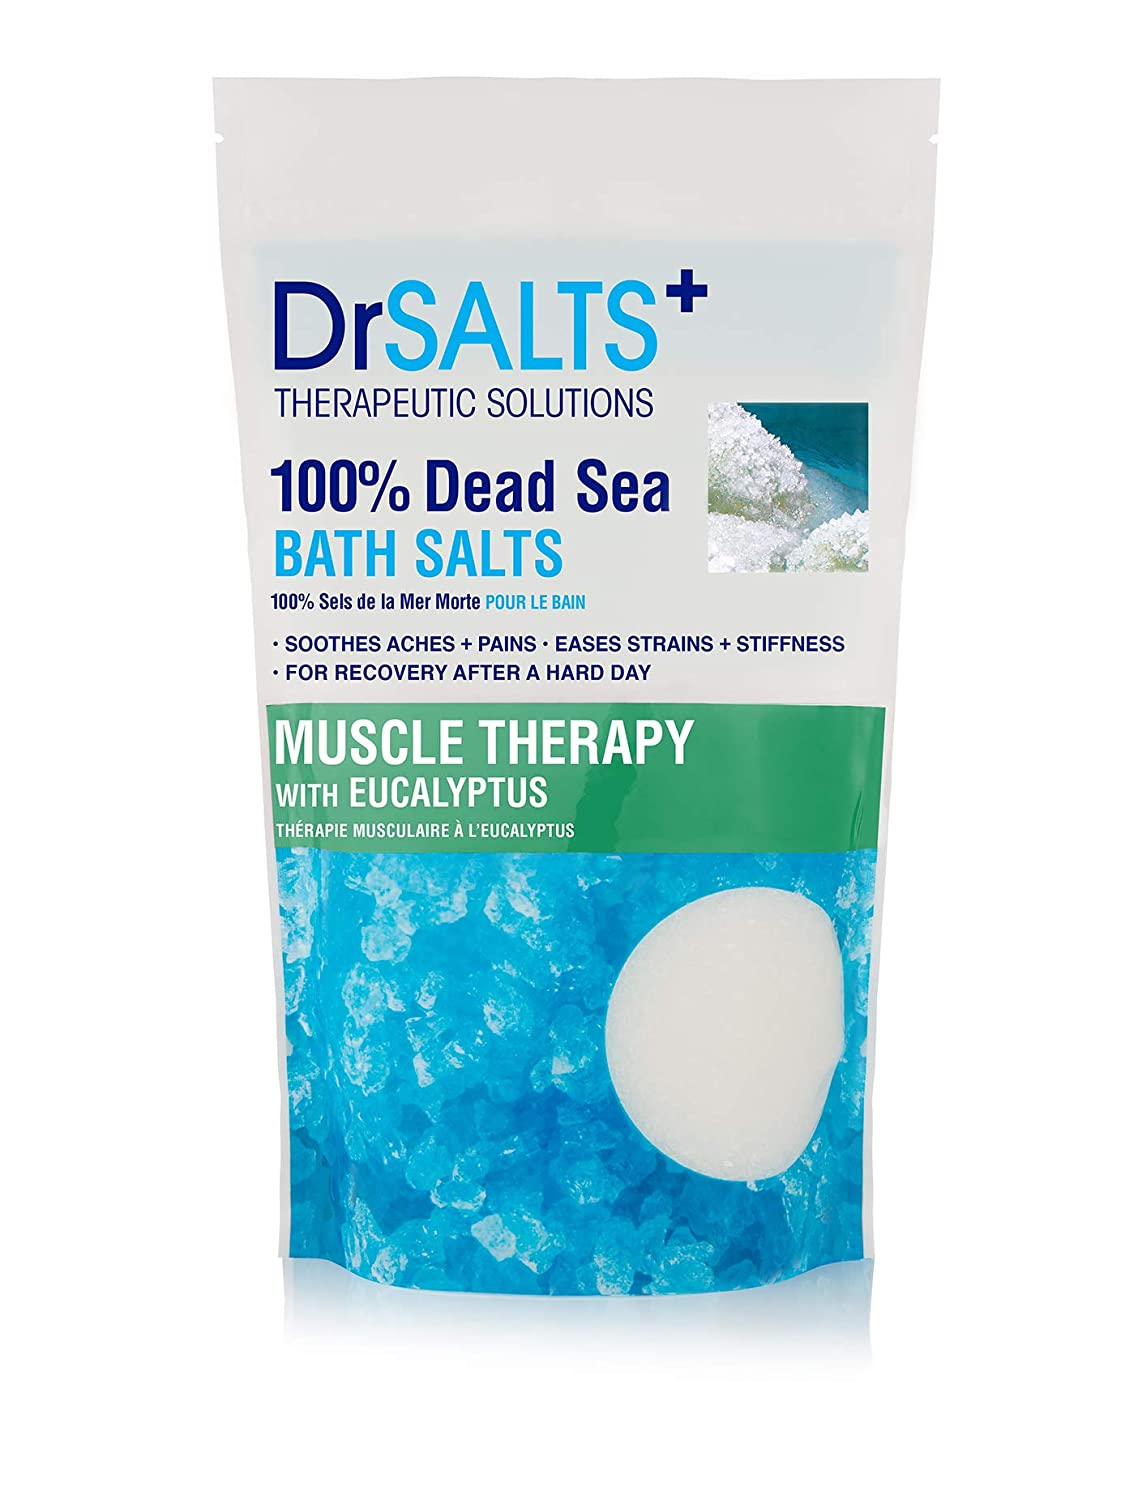 DRSALTS 100% Dead Sea Bath Salts with Eucalyptus - Muscle Therapy with  Natural Minerals, Soothe Muscle Aches & Pains, Eases Strains & Stiffness  After